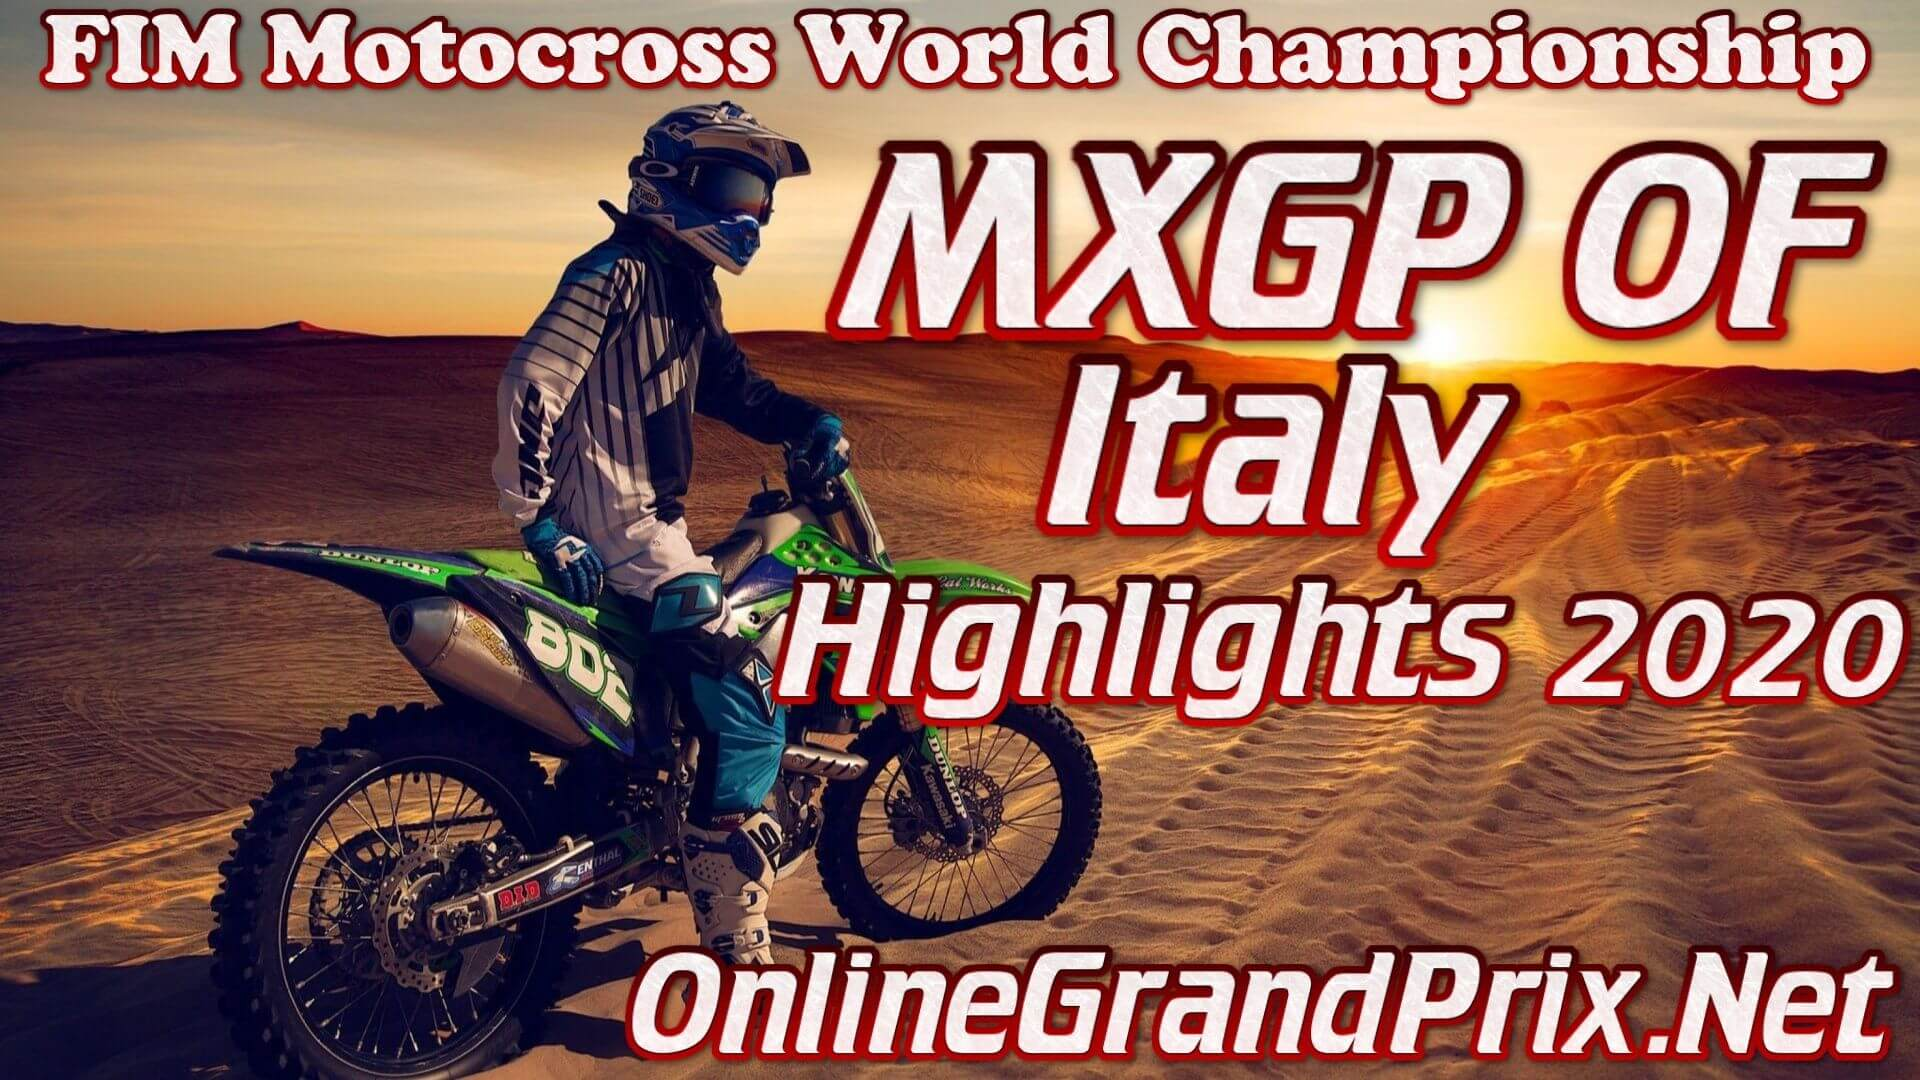 MXGP of Italy Highlights 2020